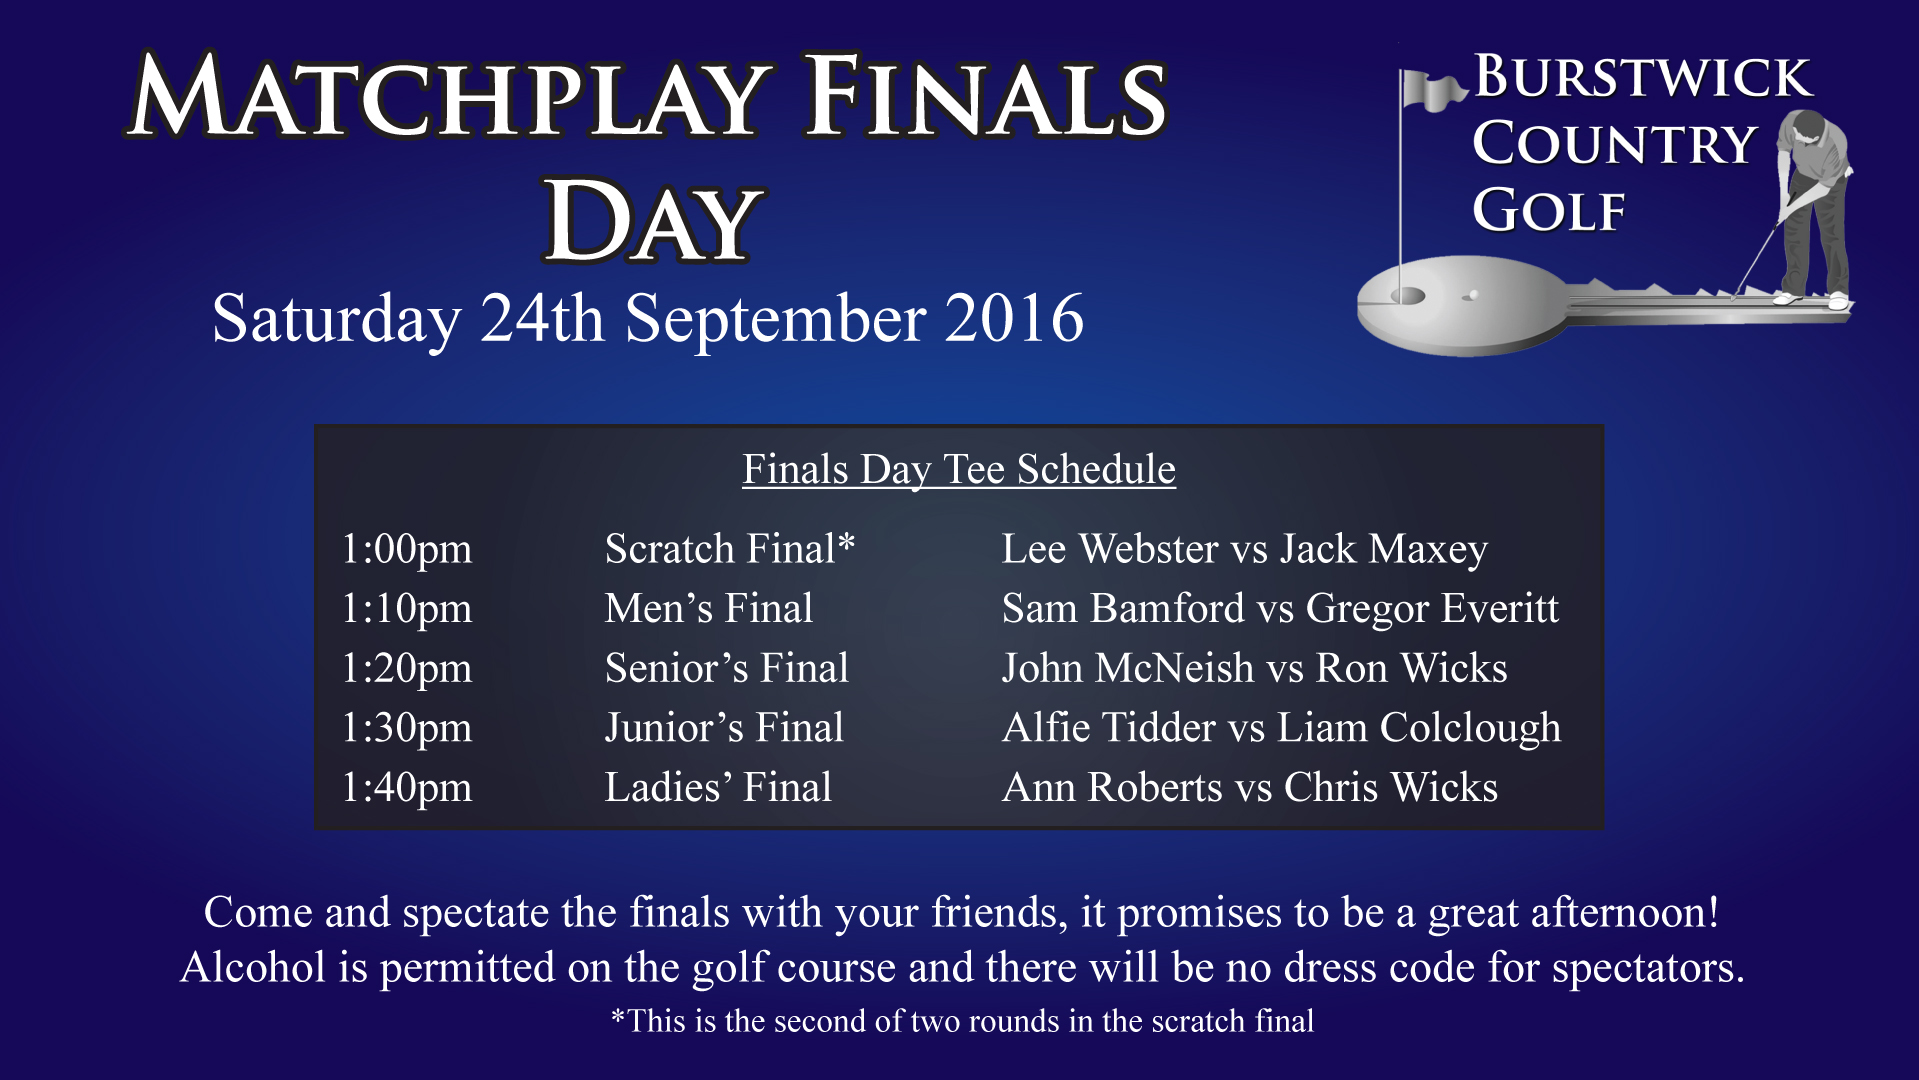 Matchplay Finals Day